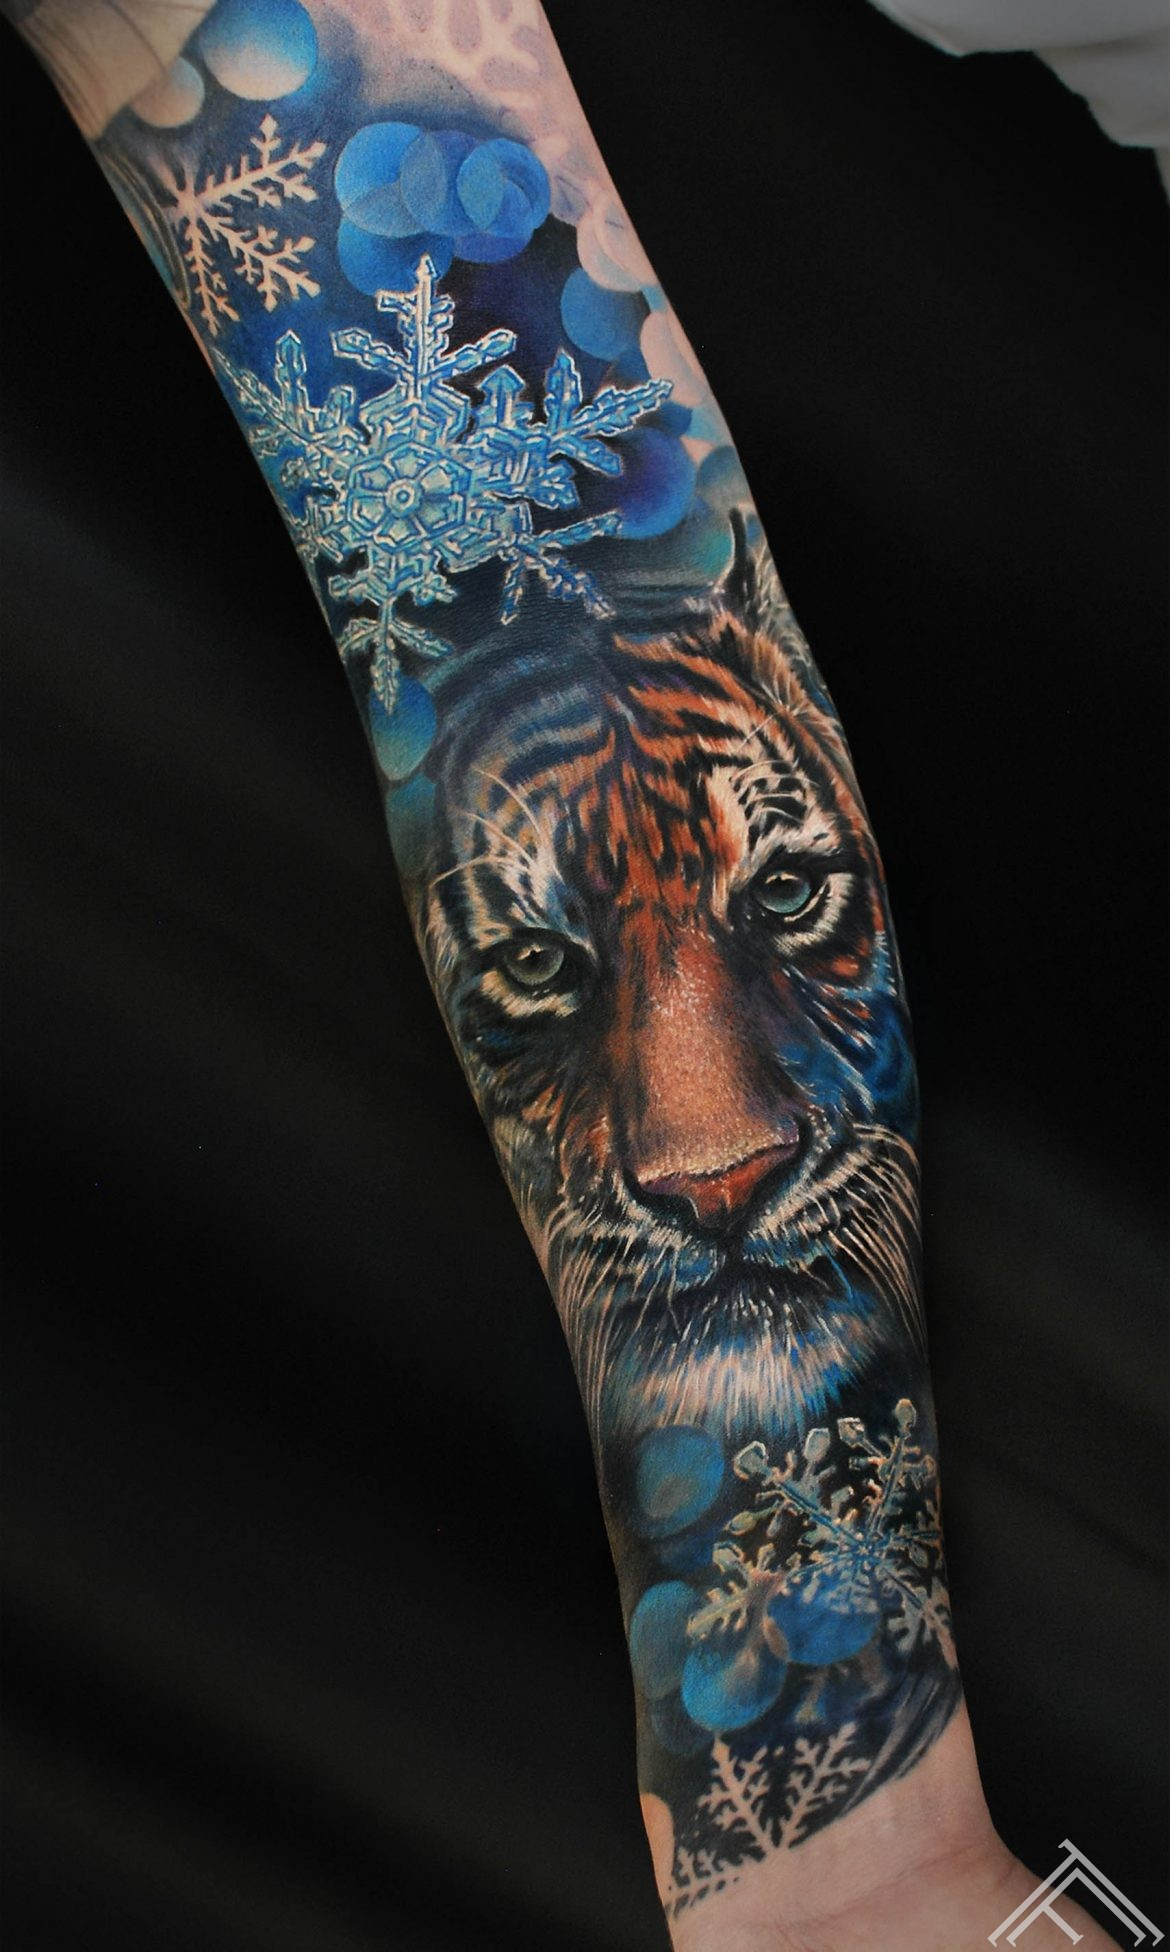 tiger-snowflake-snow-winter-cat-animal-tattoo-tattoofrequency-riga-marispavlo-tetovejums-tigeris-FB